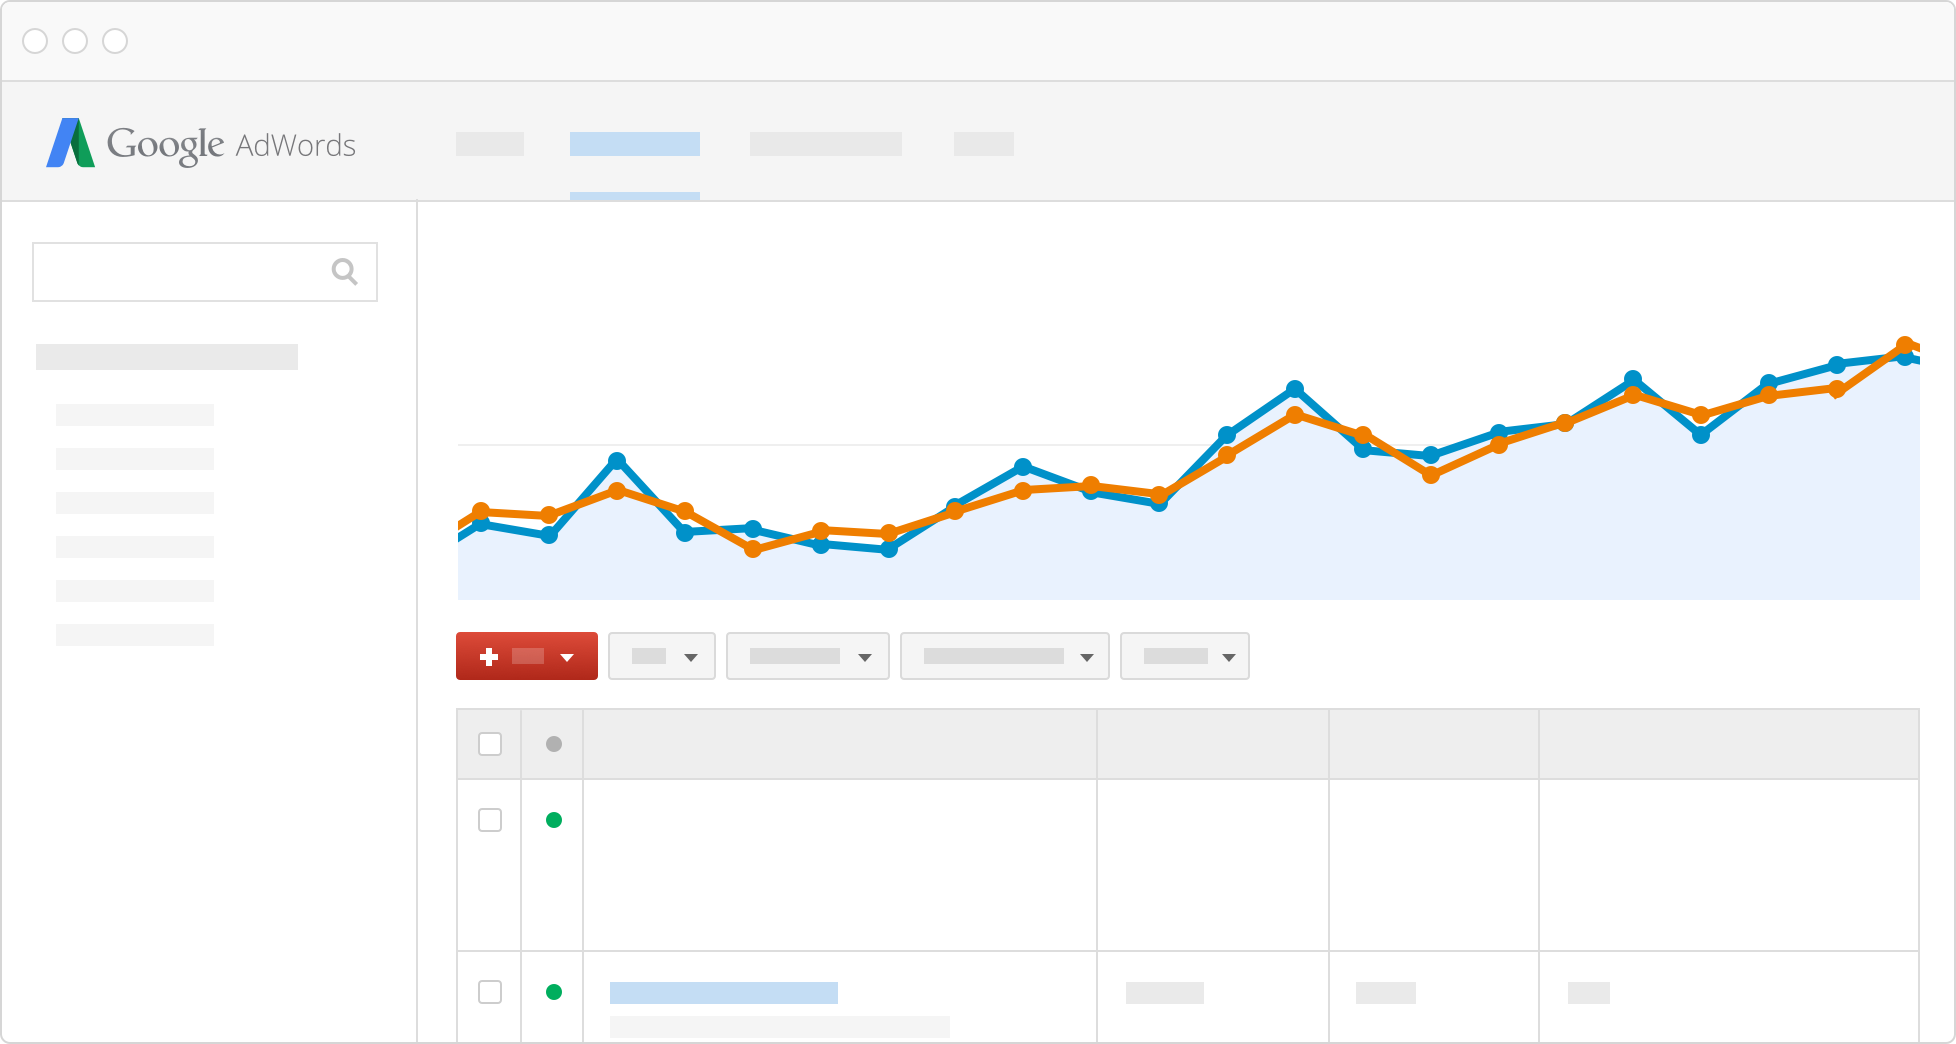 Track costs and clicks in Google AdWords